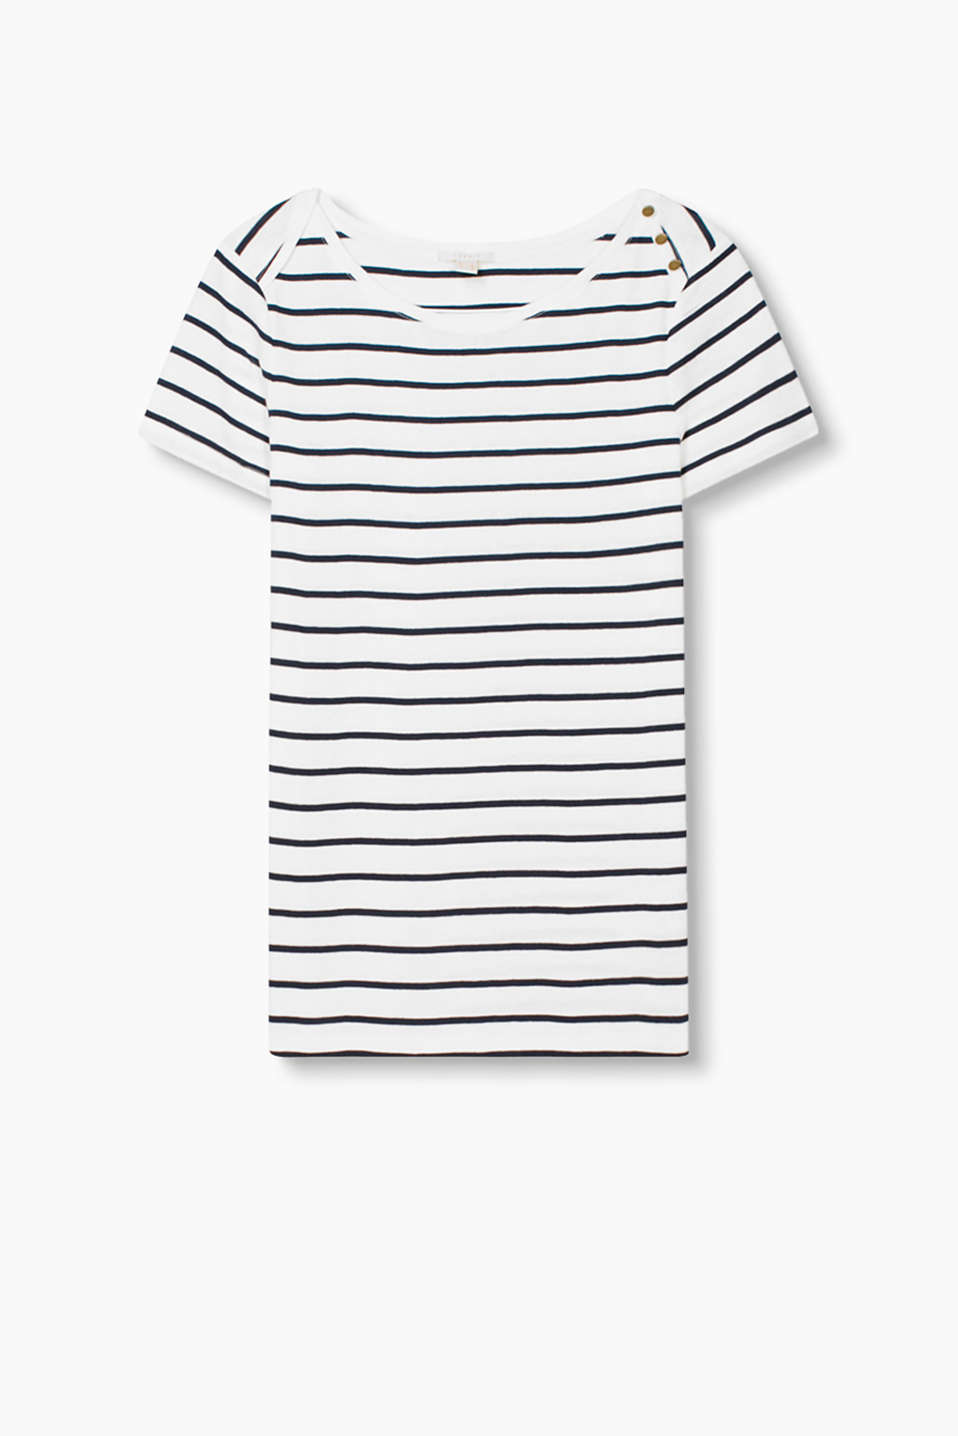 T_shirt with nautical stripes, a bateau neckline and shoulder buttons, in soft cotton jersey